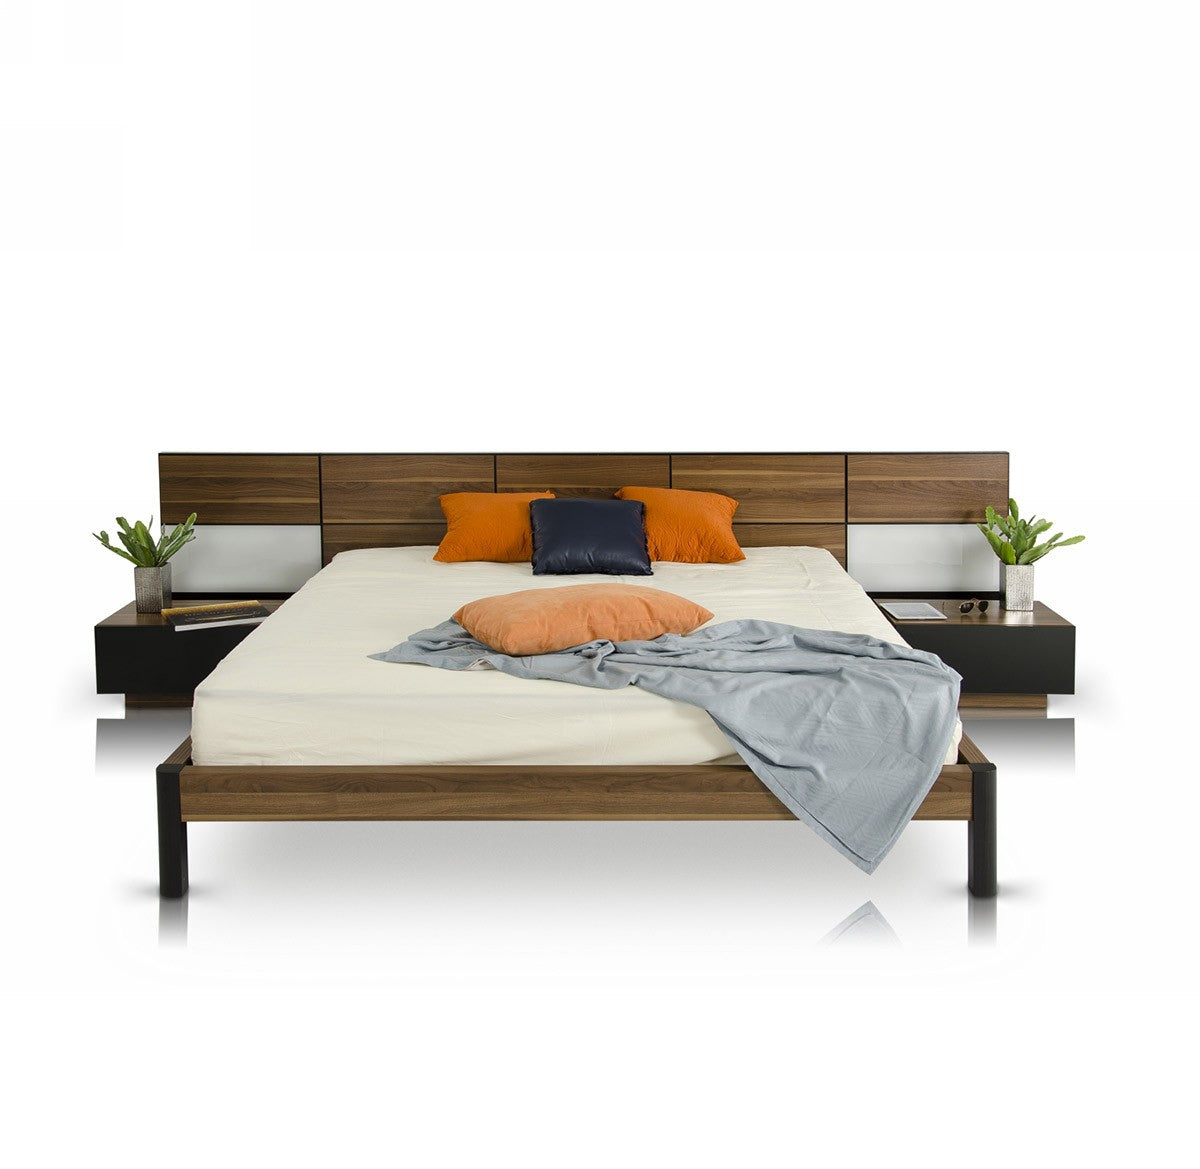 Modern Bed With Nightstands Attached Zuo Modern